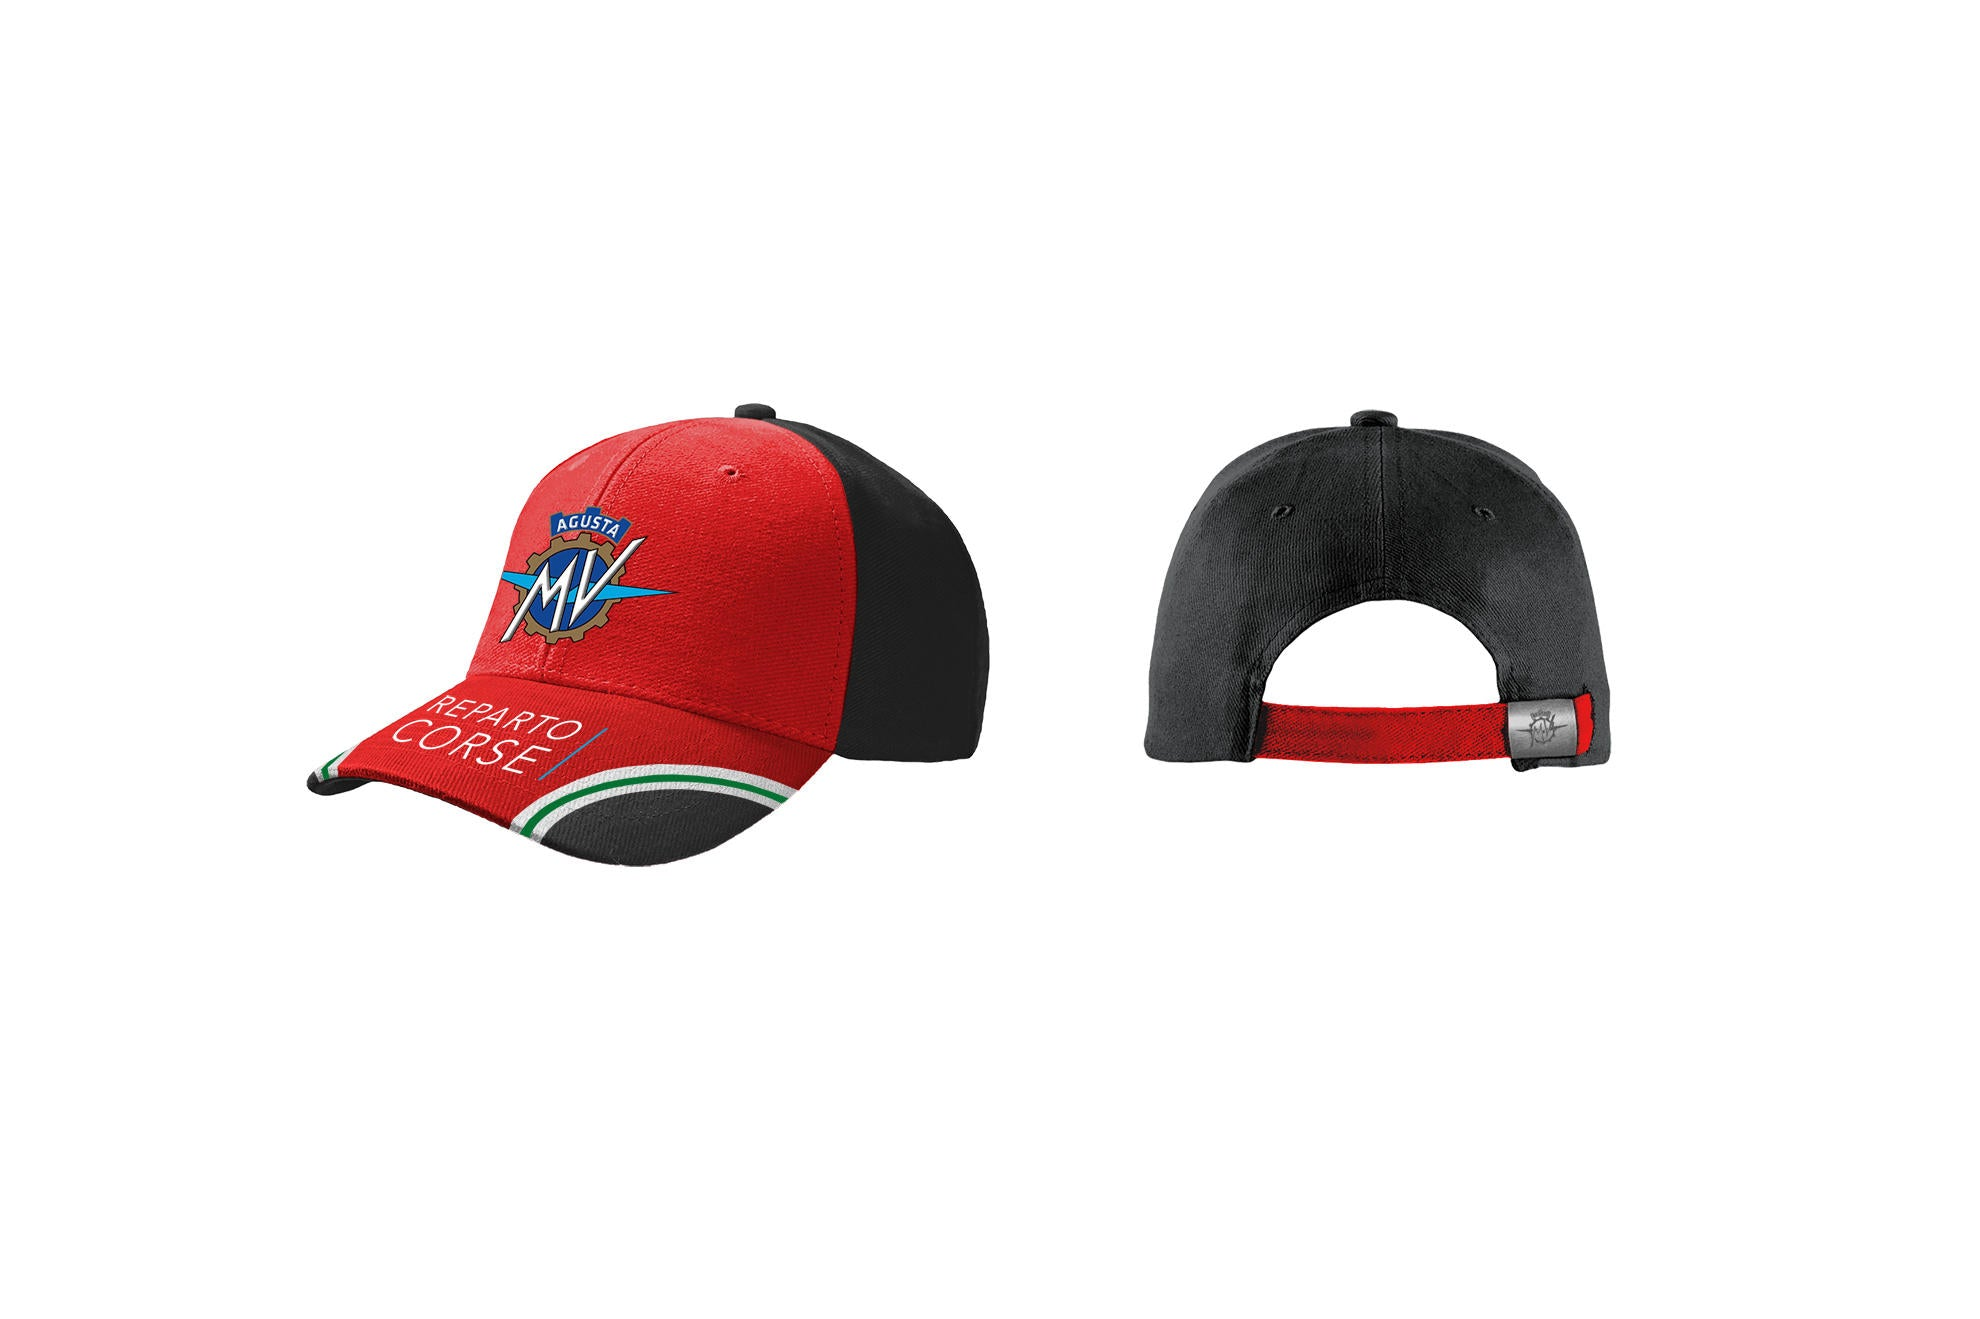 MV Agusta Reparto Corse Baseball Cap, MV Agusta Clothing, CNC Racing - Averys Motorcycles